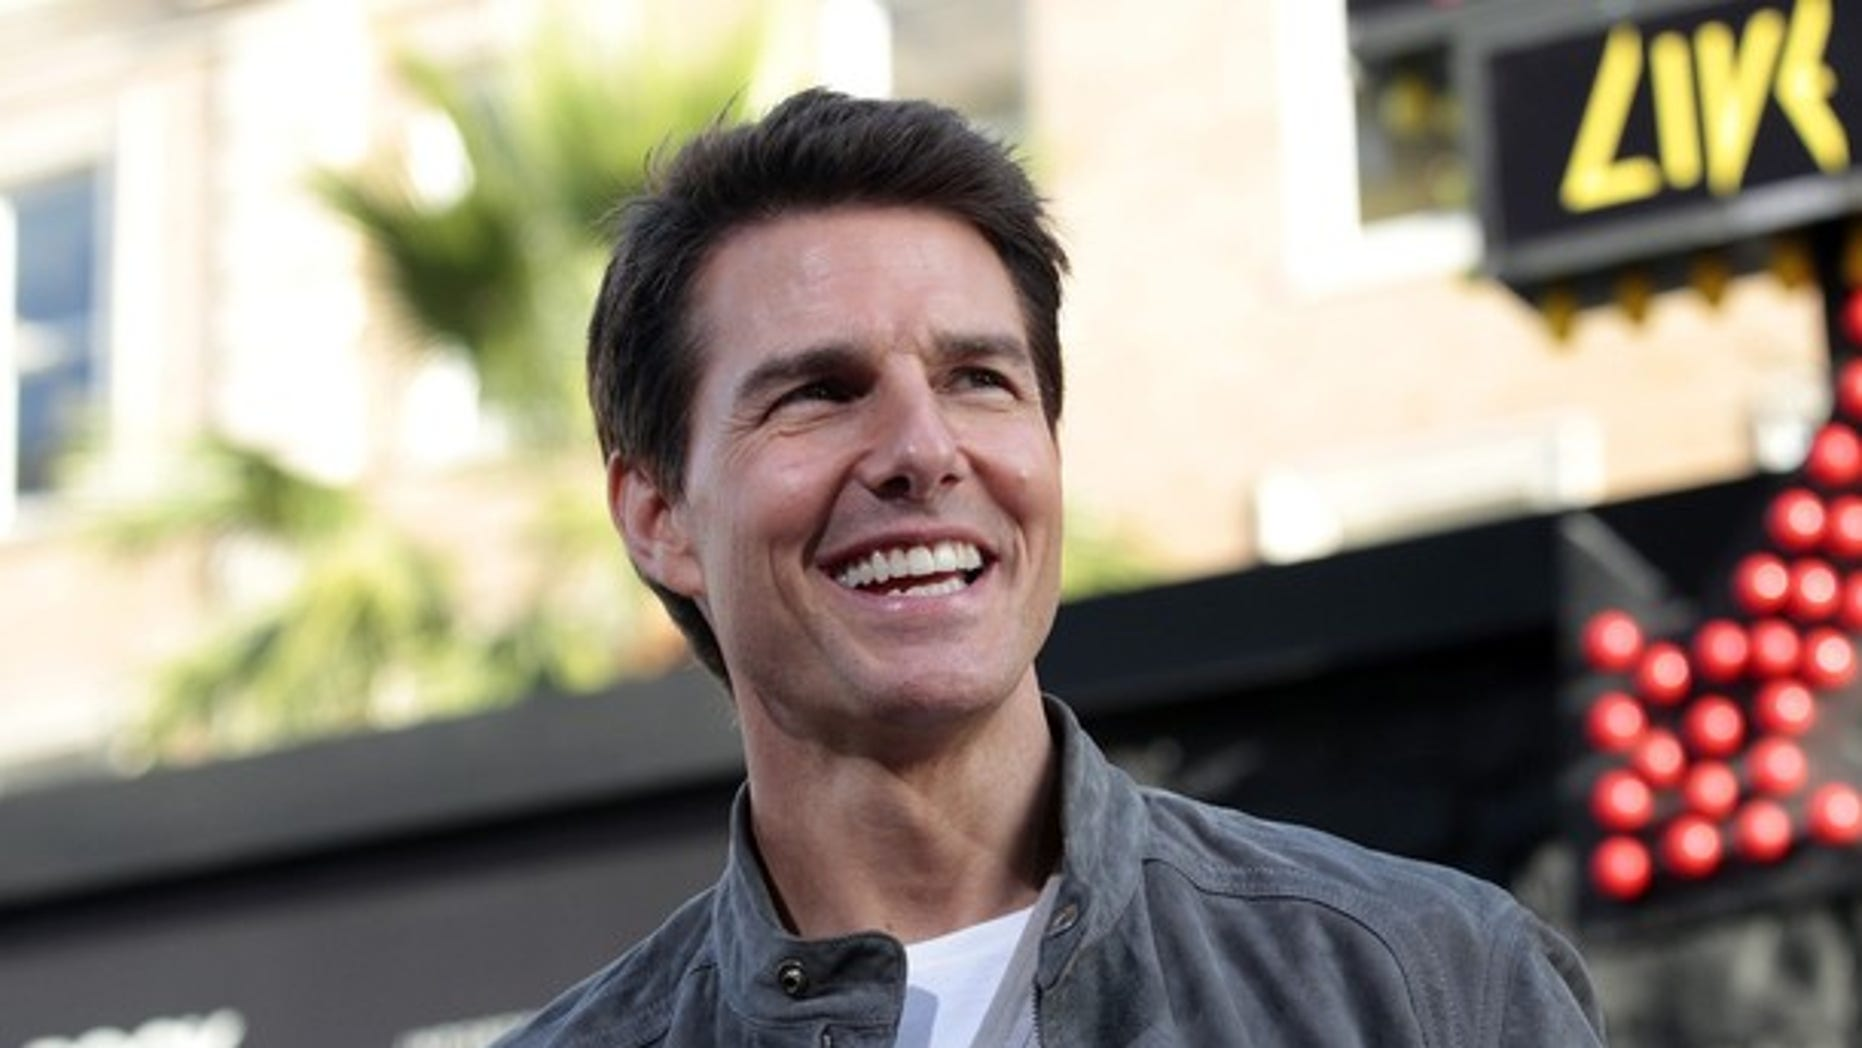 Tom Cruise thinks he's on planet to fight aliens, according to ...